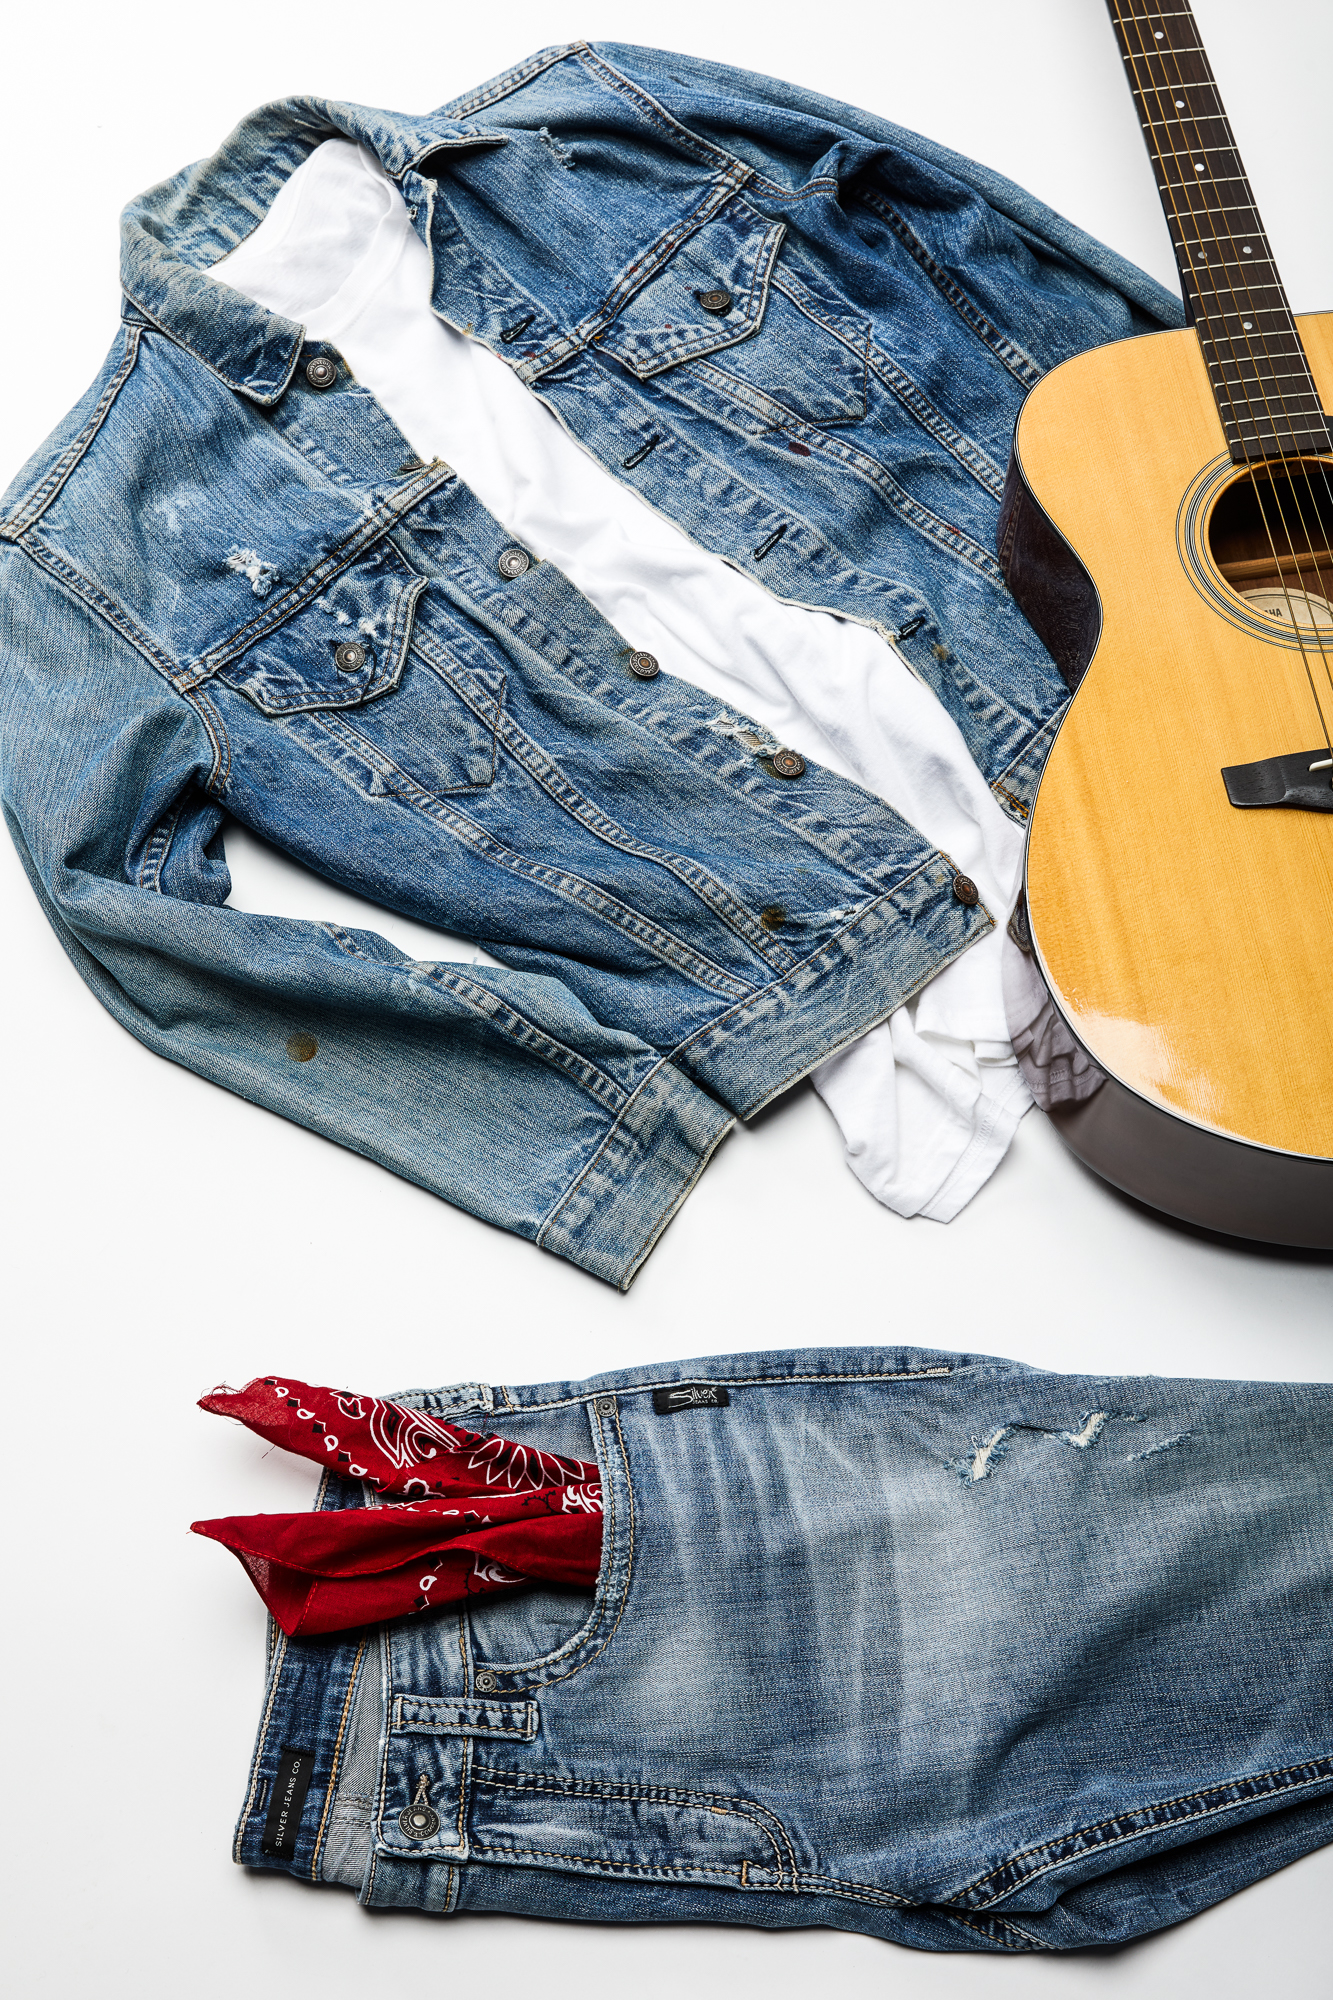 diy-denim-halloween-costumes-silver-jeans-co-bruce-springsteen